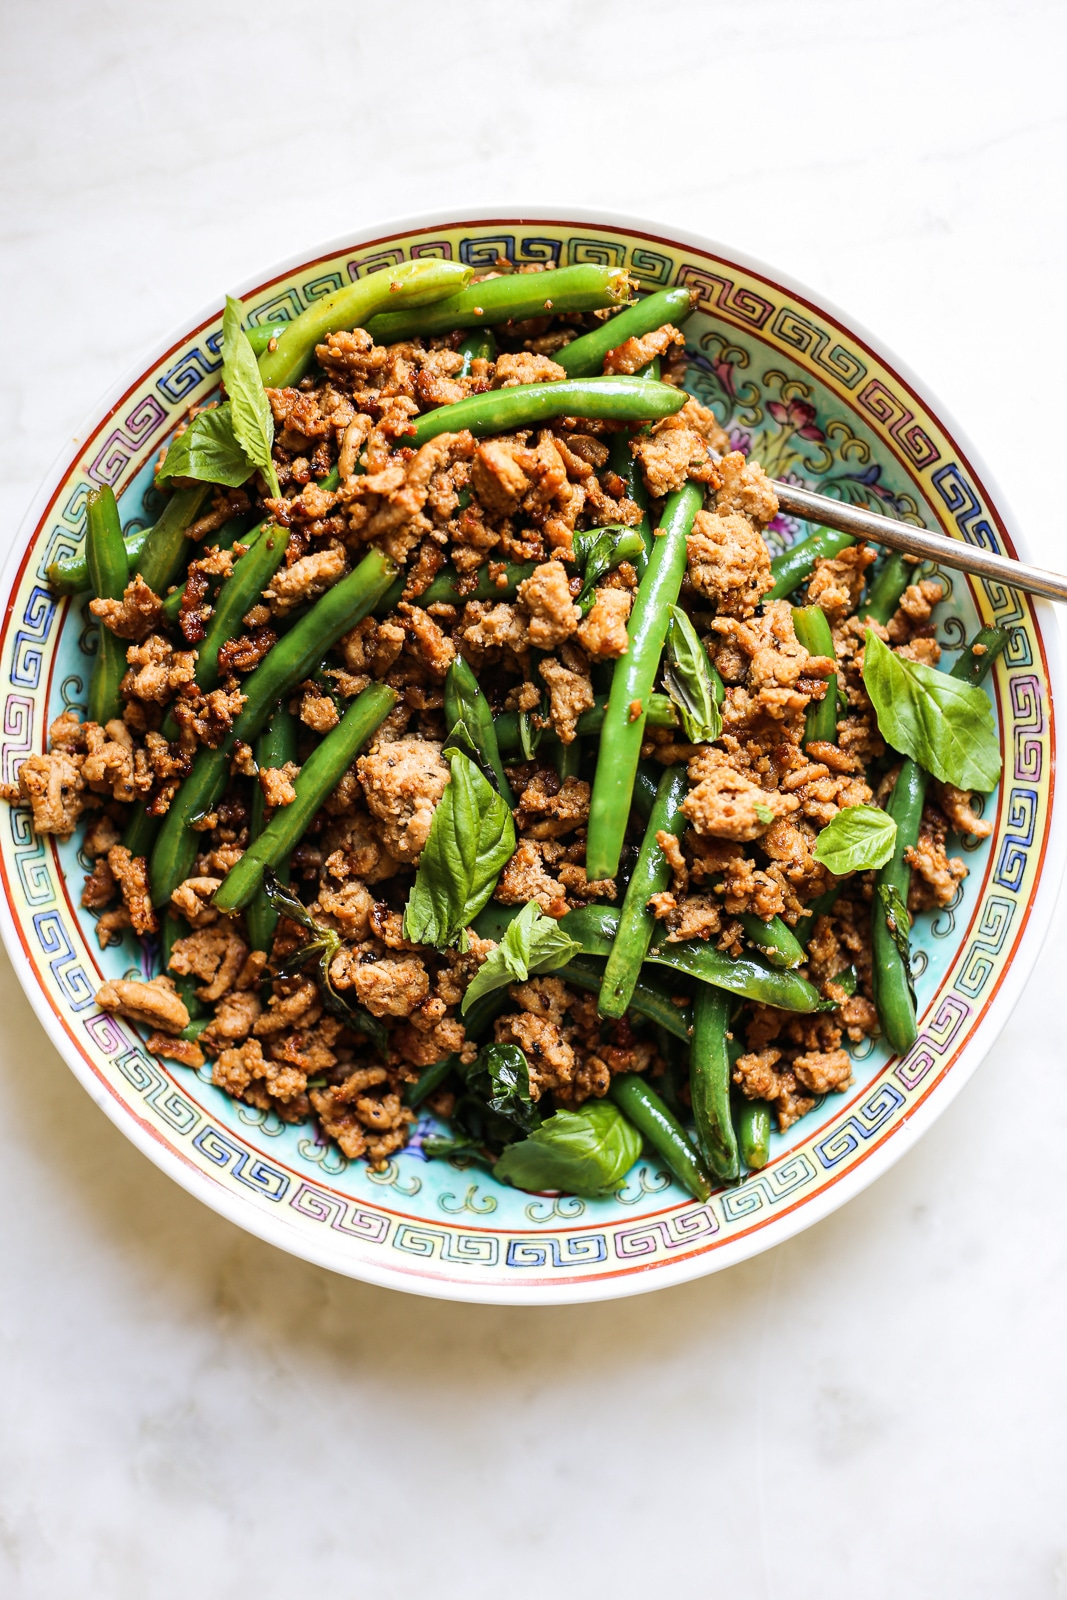 Green bean stir fry on a patterned plate